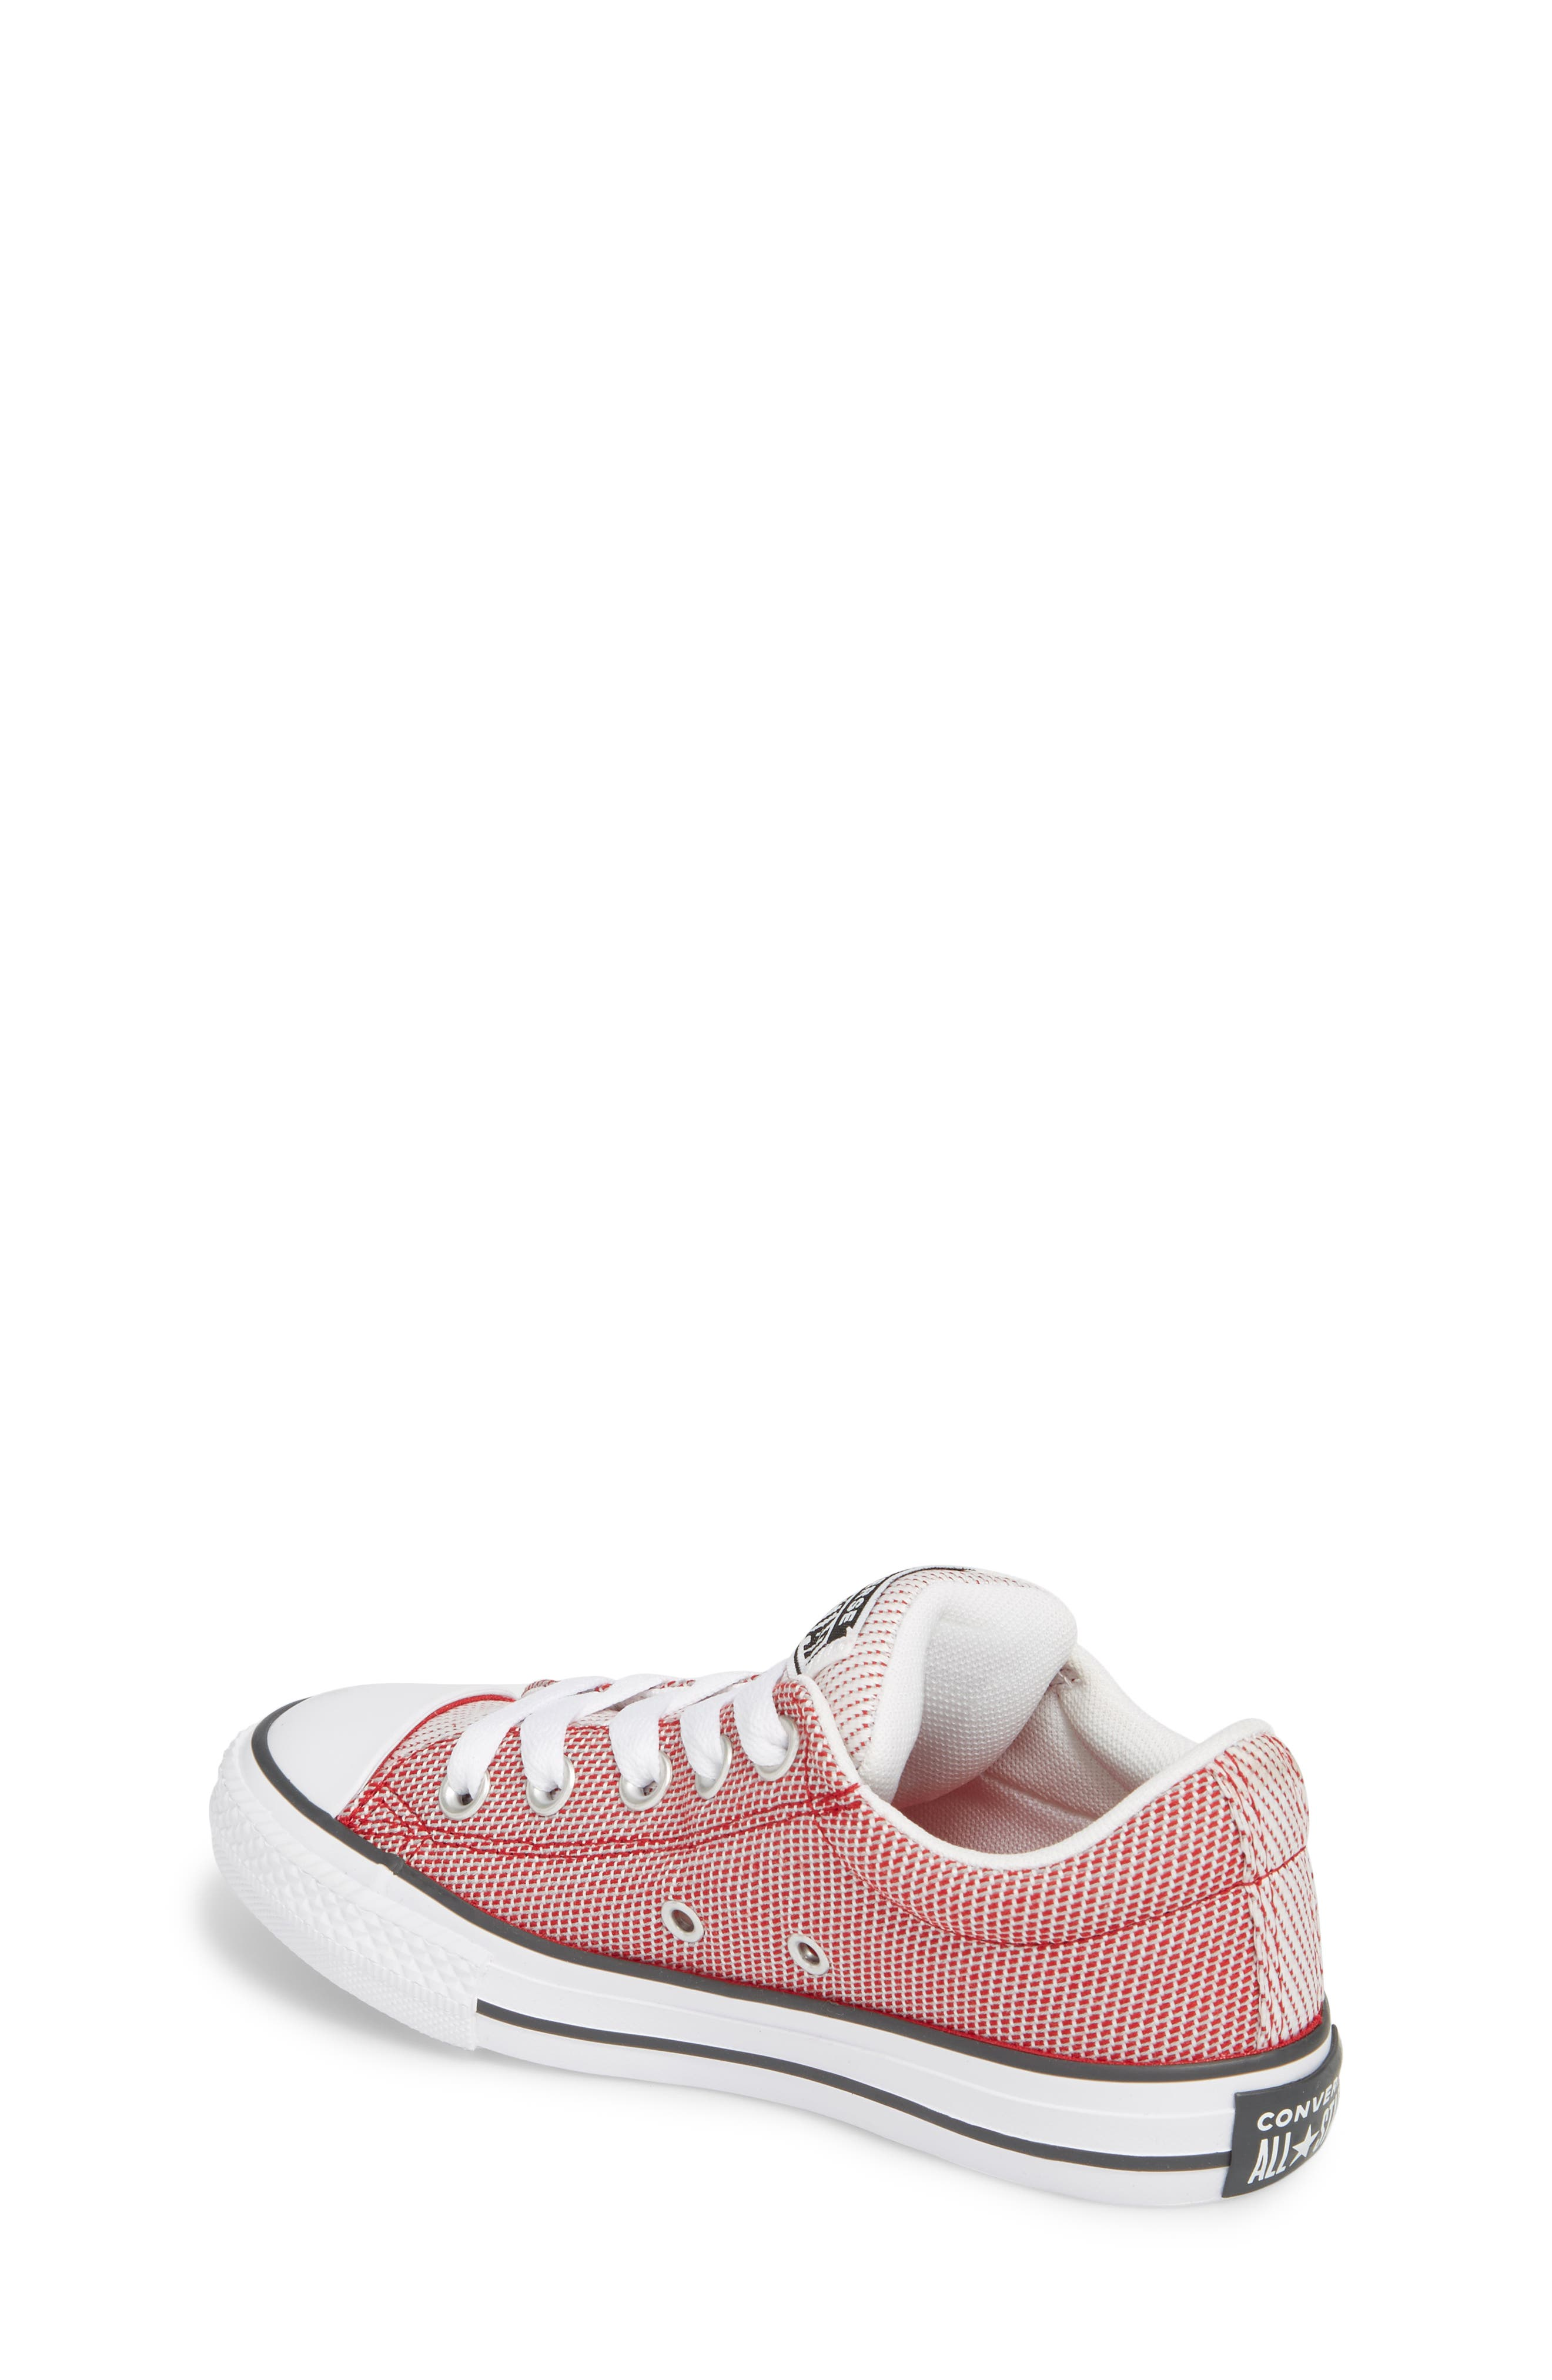 CONVERSE,                             Chuck Taylor<sup>®</sup> All Star<sup>®</sup> Woven Street Sneaker,                             Alternate thumbnail 2, color,                             600